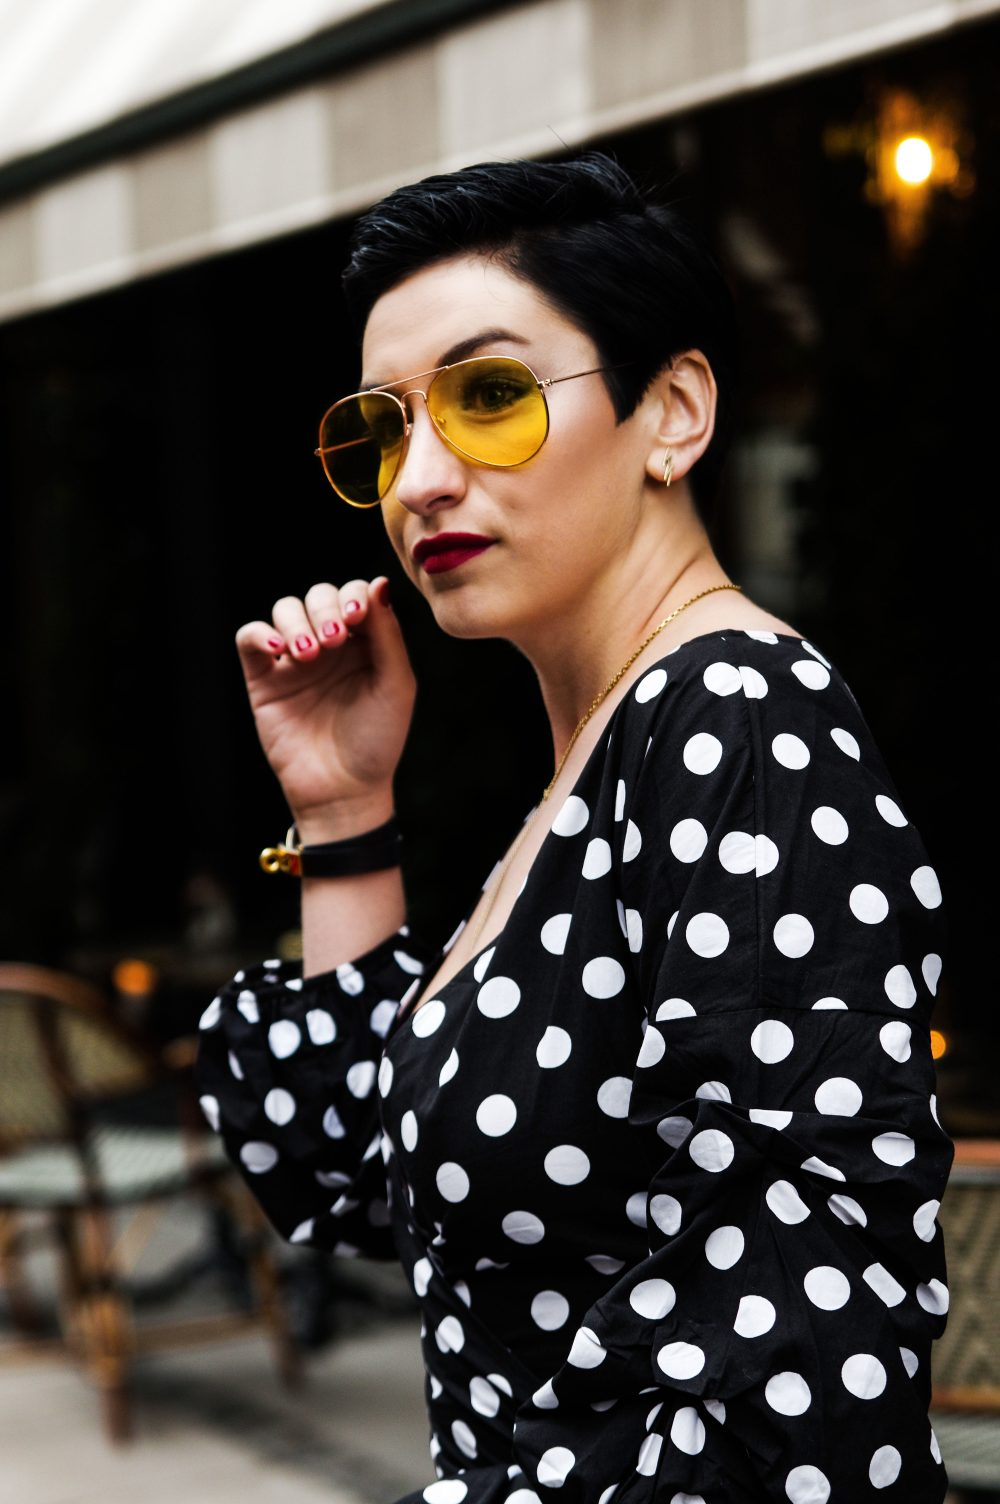 polka dots valentines day outfit, polka dots spring outfit, women top , glasses, eyewear, short hairstyle, black short hairstyle, pixxie cut. 1jpg